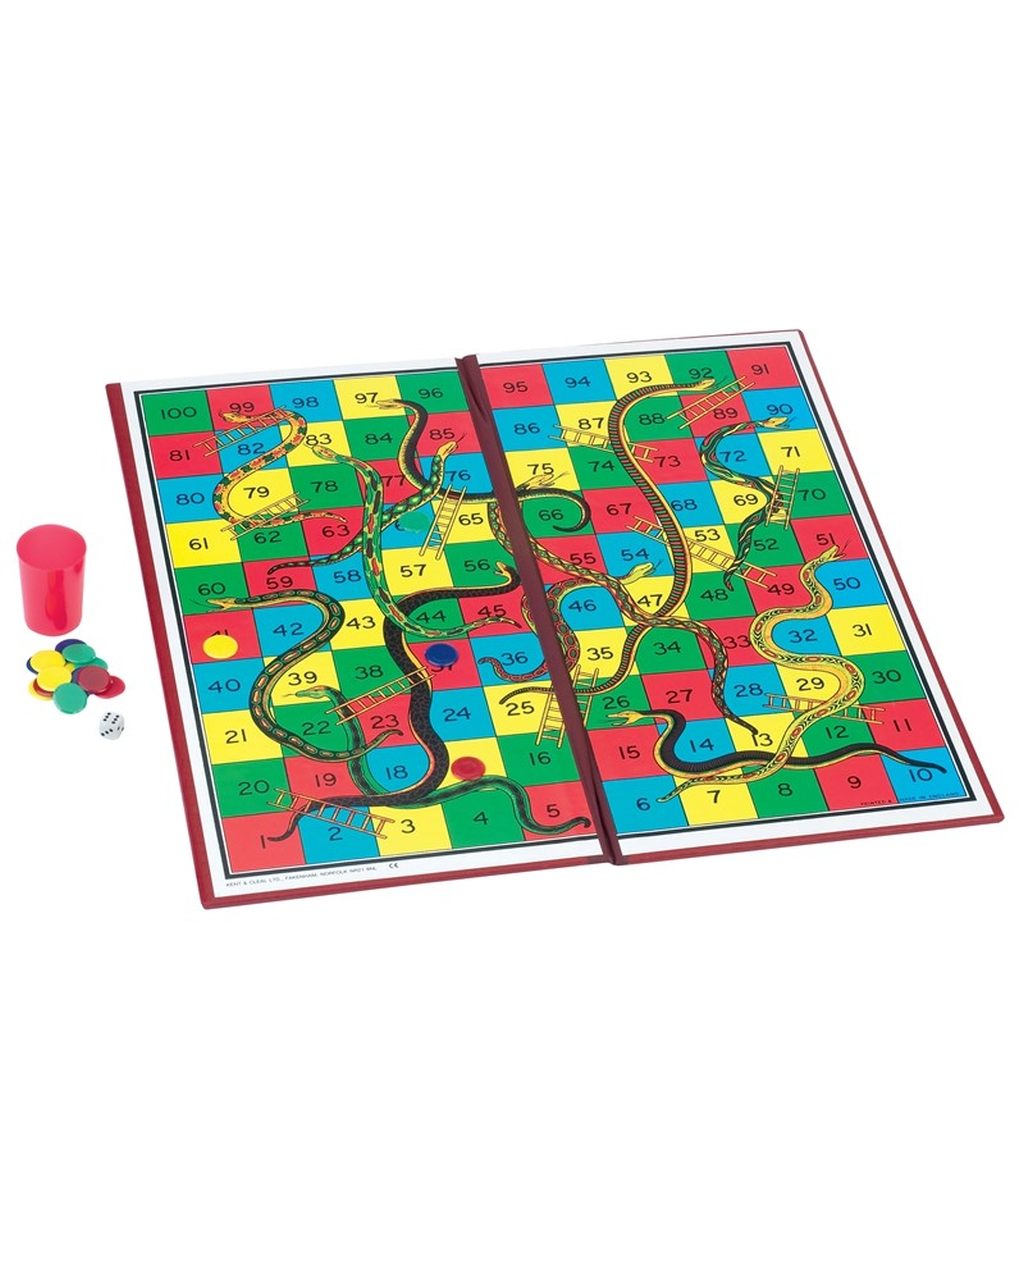 Snakes & Ladders/Ludo